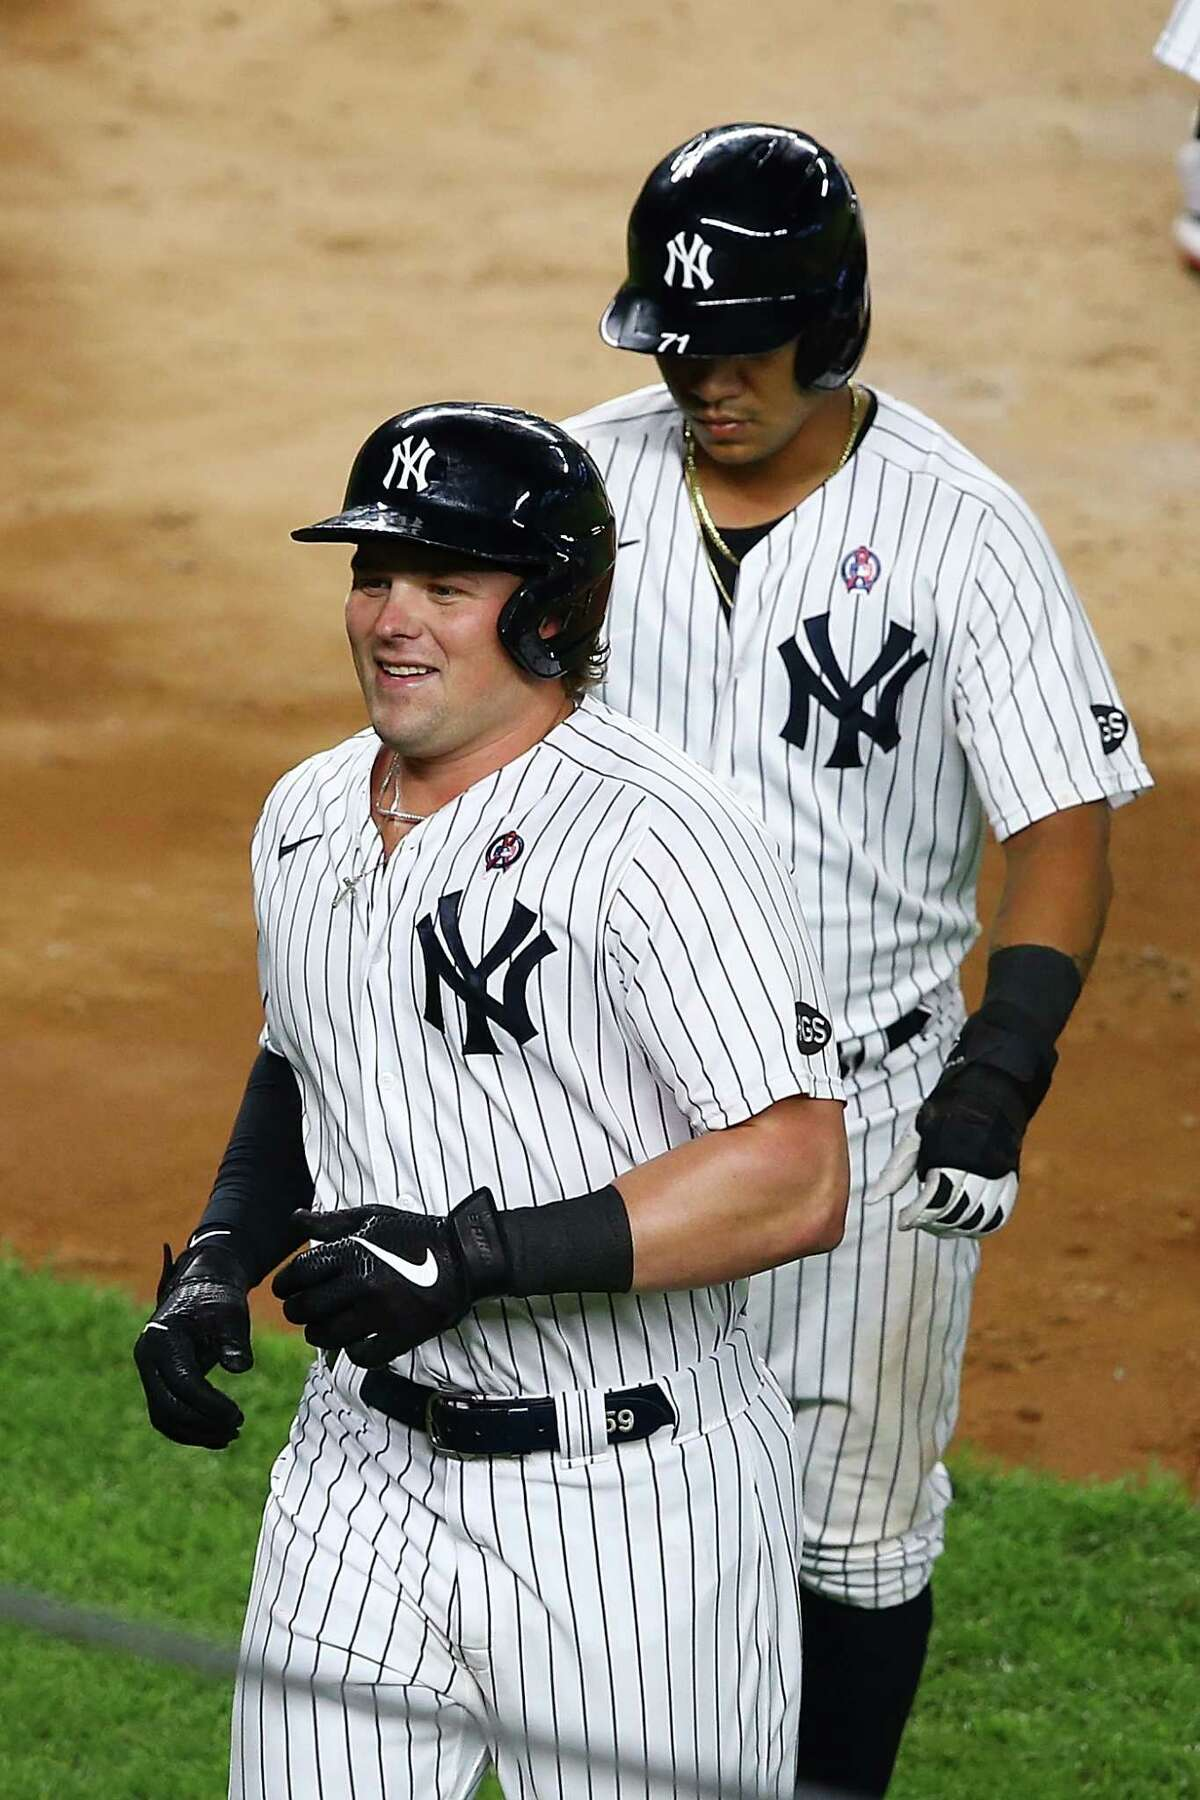 NEW YORK, NEW YORK - SEPTEMBER 11: Luke Voit #59 of the New York Yankees smiles after hitting a 3-run home run to center field in the fourth inning against the Baltimore Orioles at Yankee Stadium on September 11, 2020 in New York City. (Photo by Mike Stobe/Getty Images)